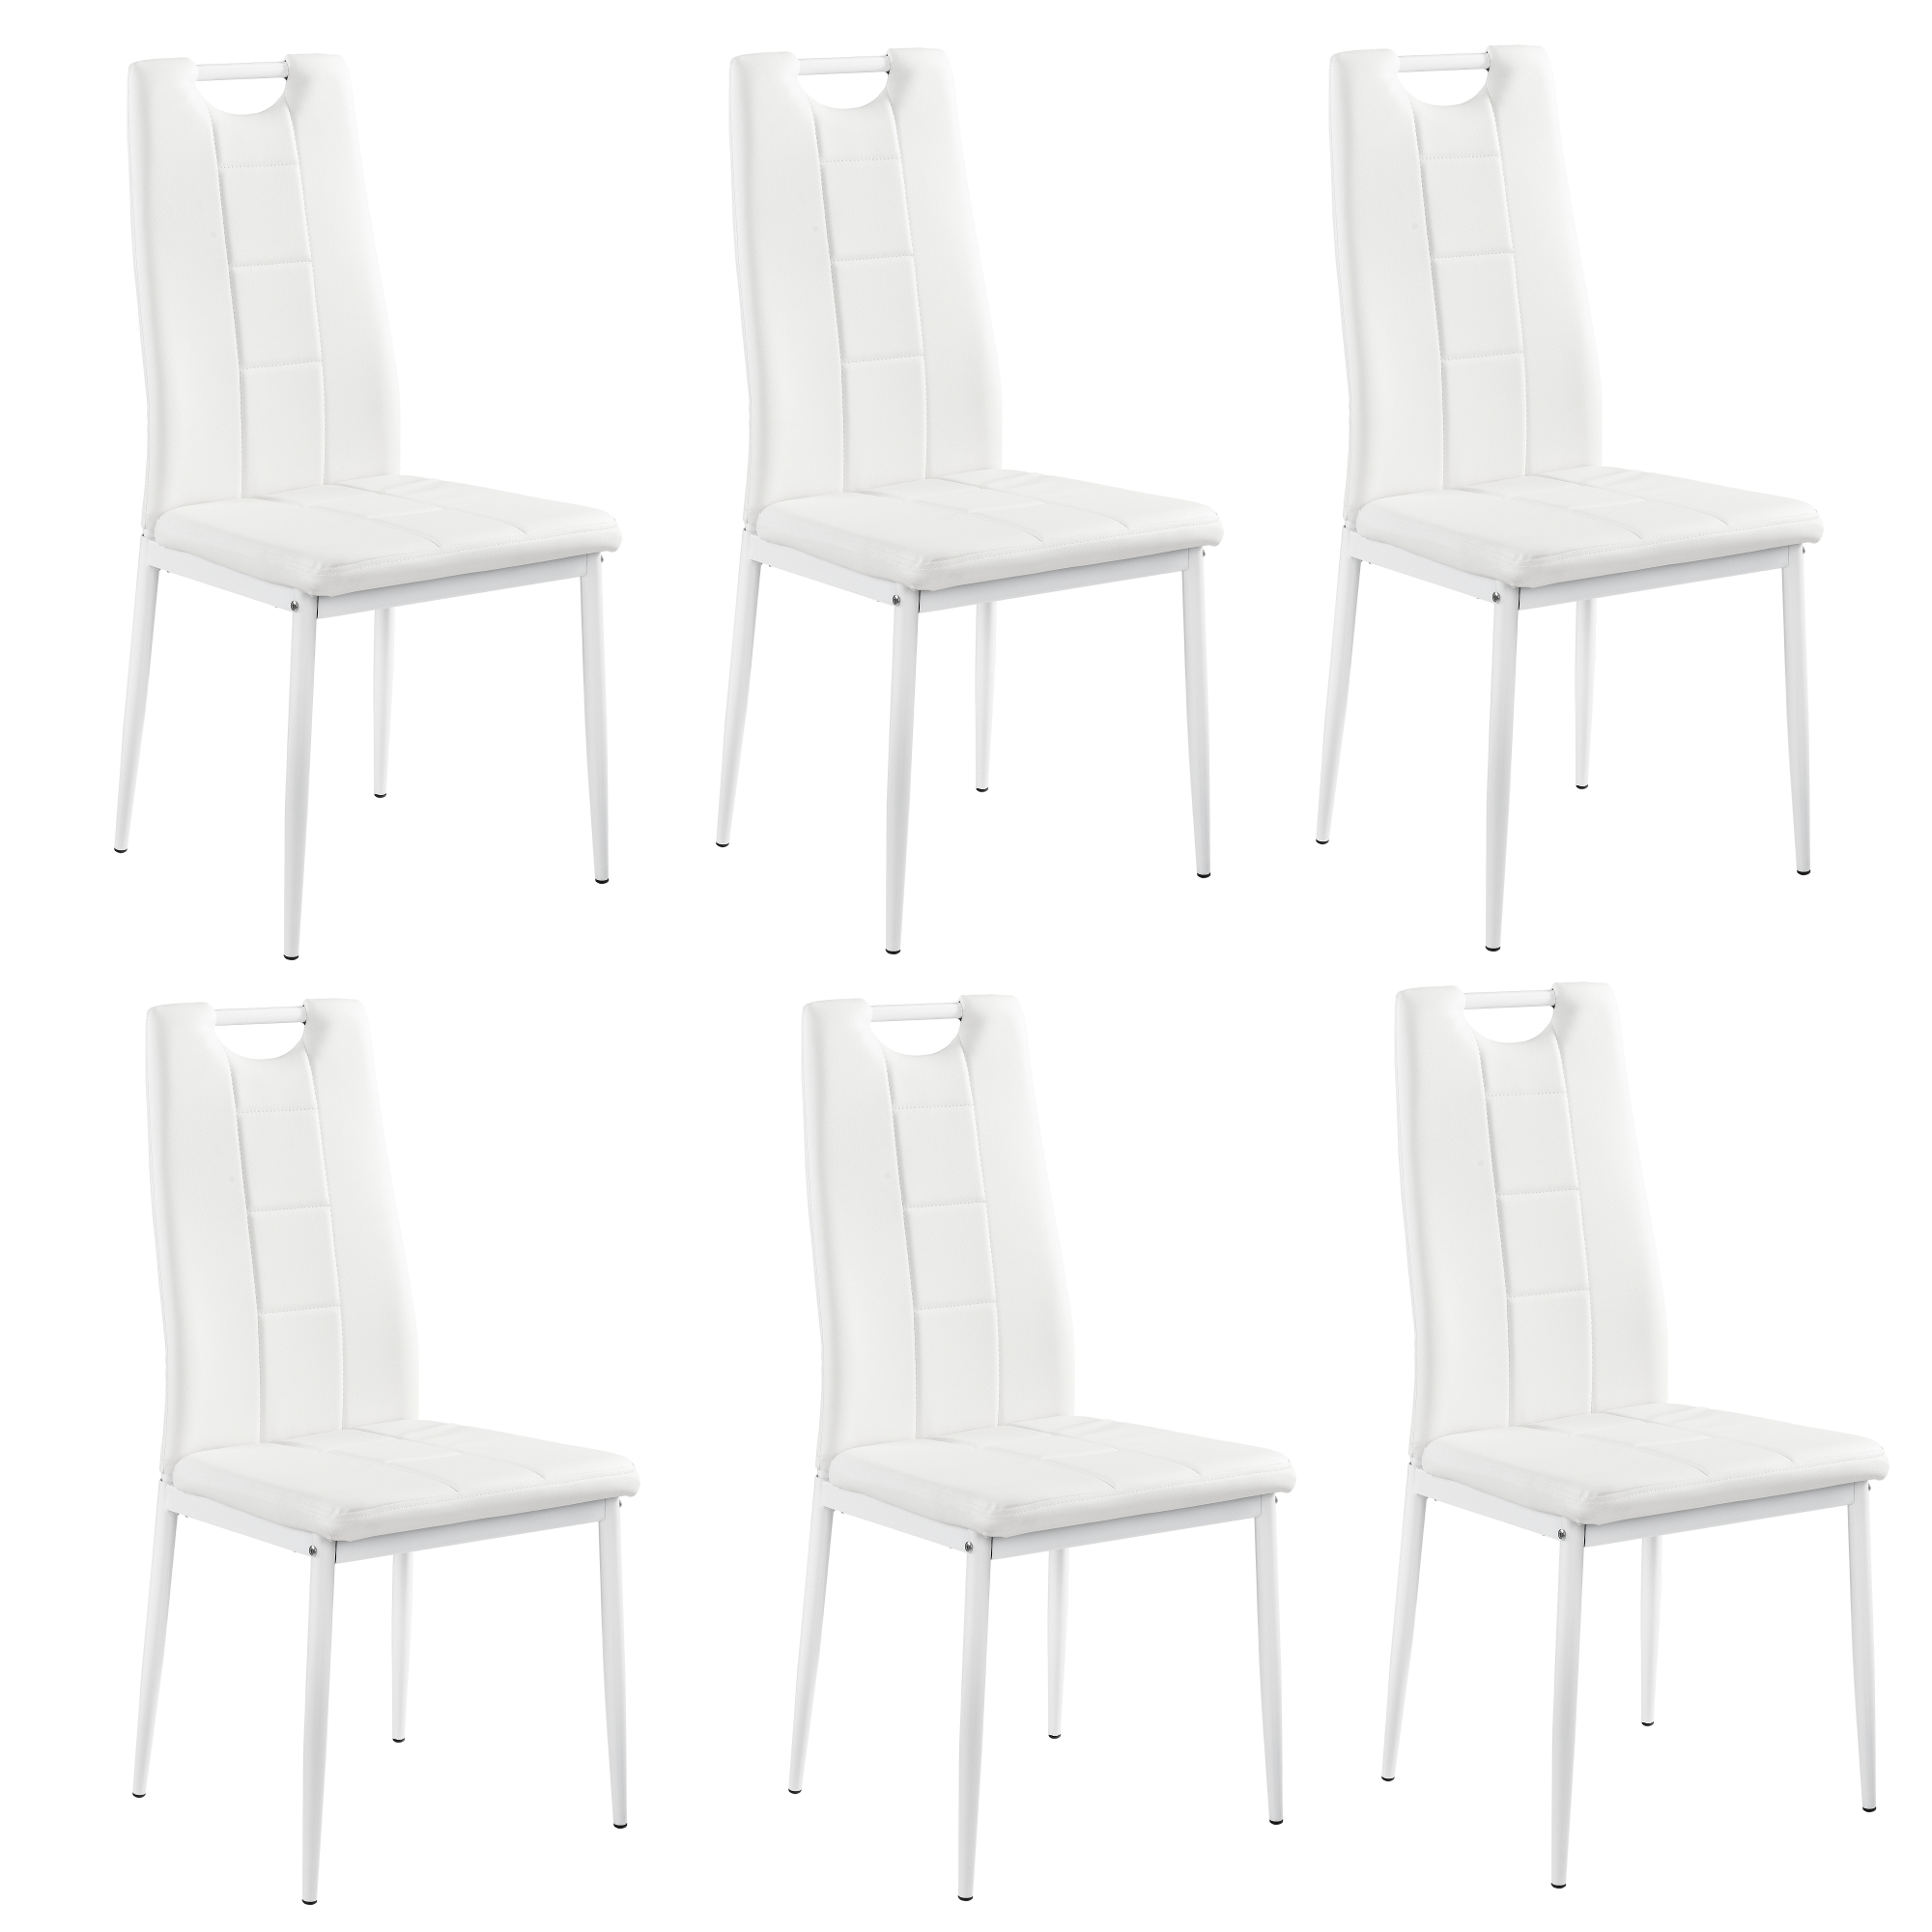 6x chaises blanc dossier haut salle manger similicuir rembourr e ebay. Black Bedroom Furniture Sets. Home Design Ideas